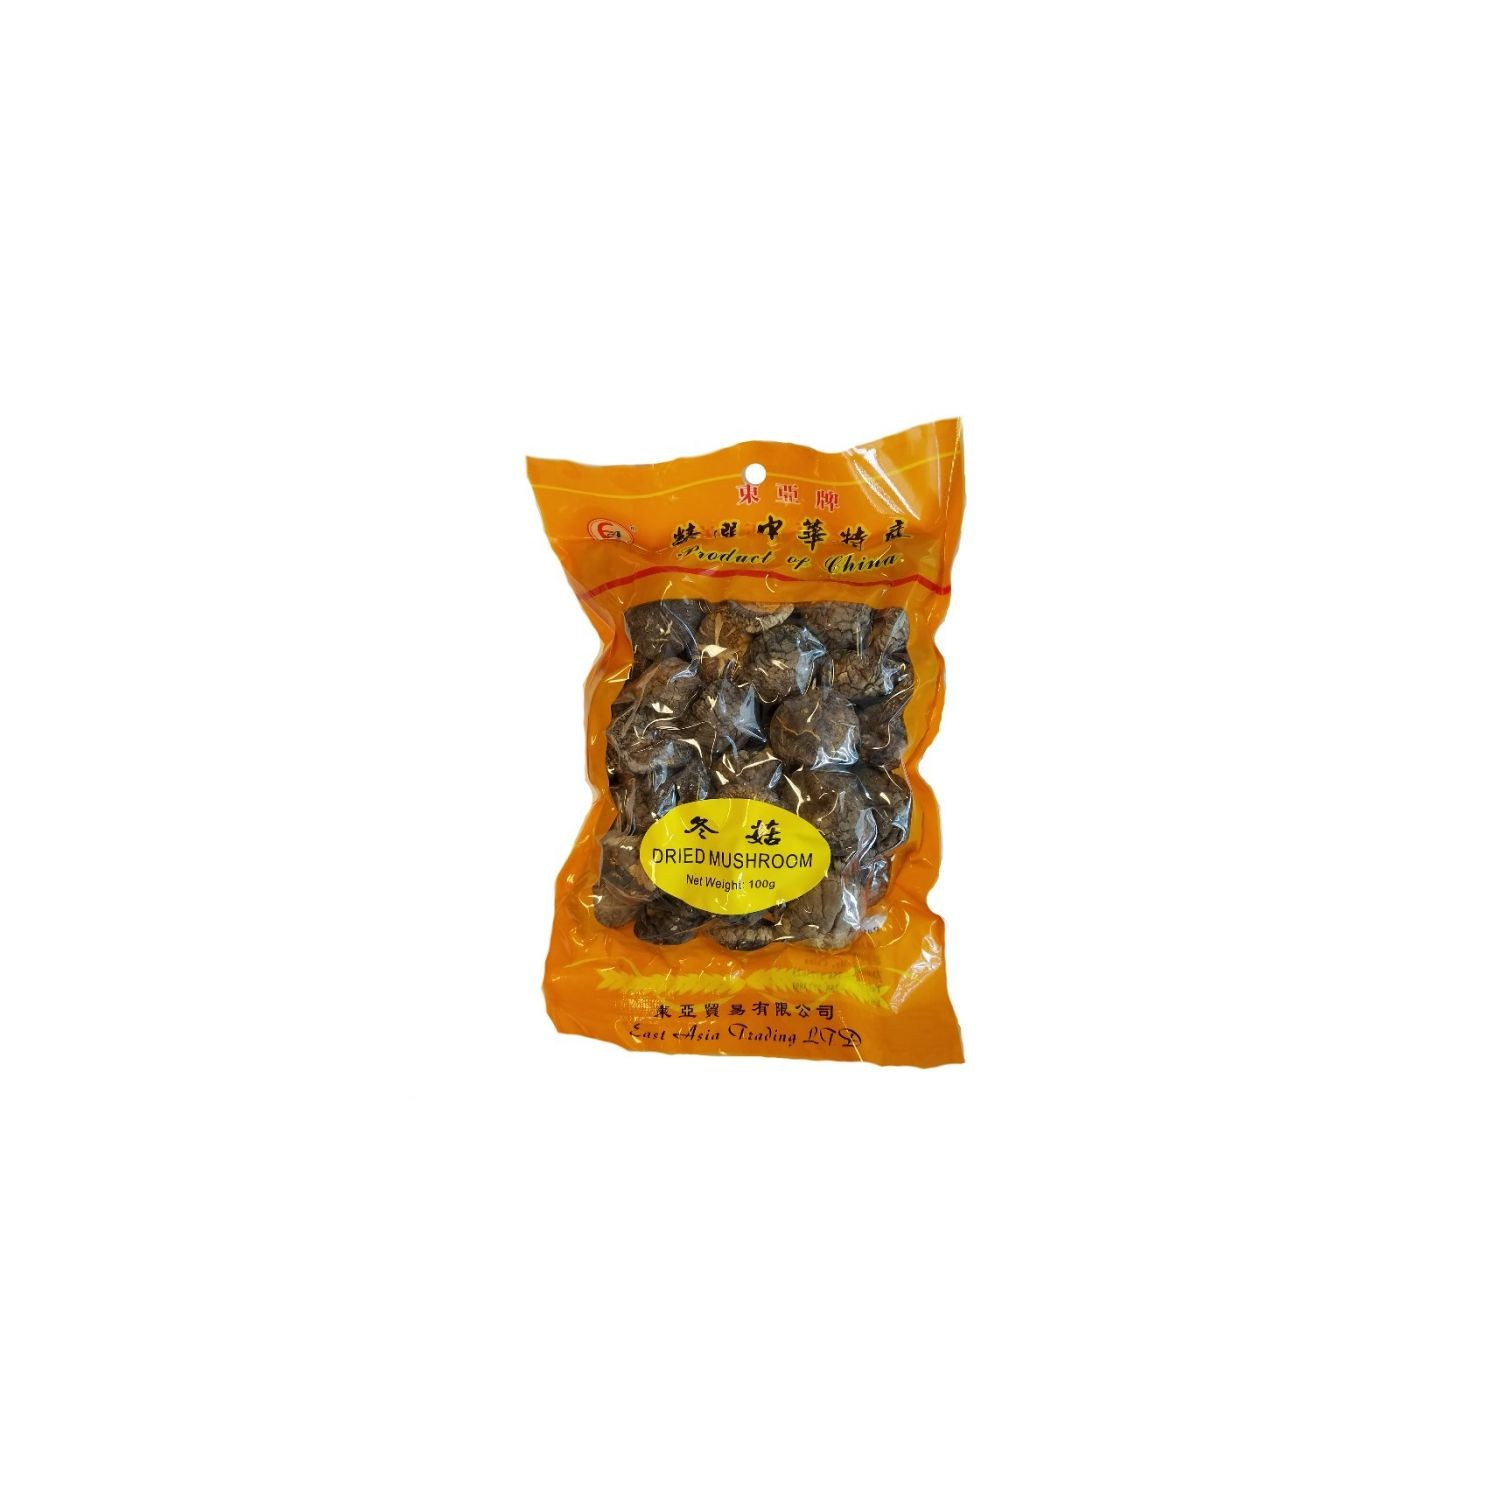 East Asia Brand 200g Dried Mushrooms